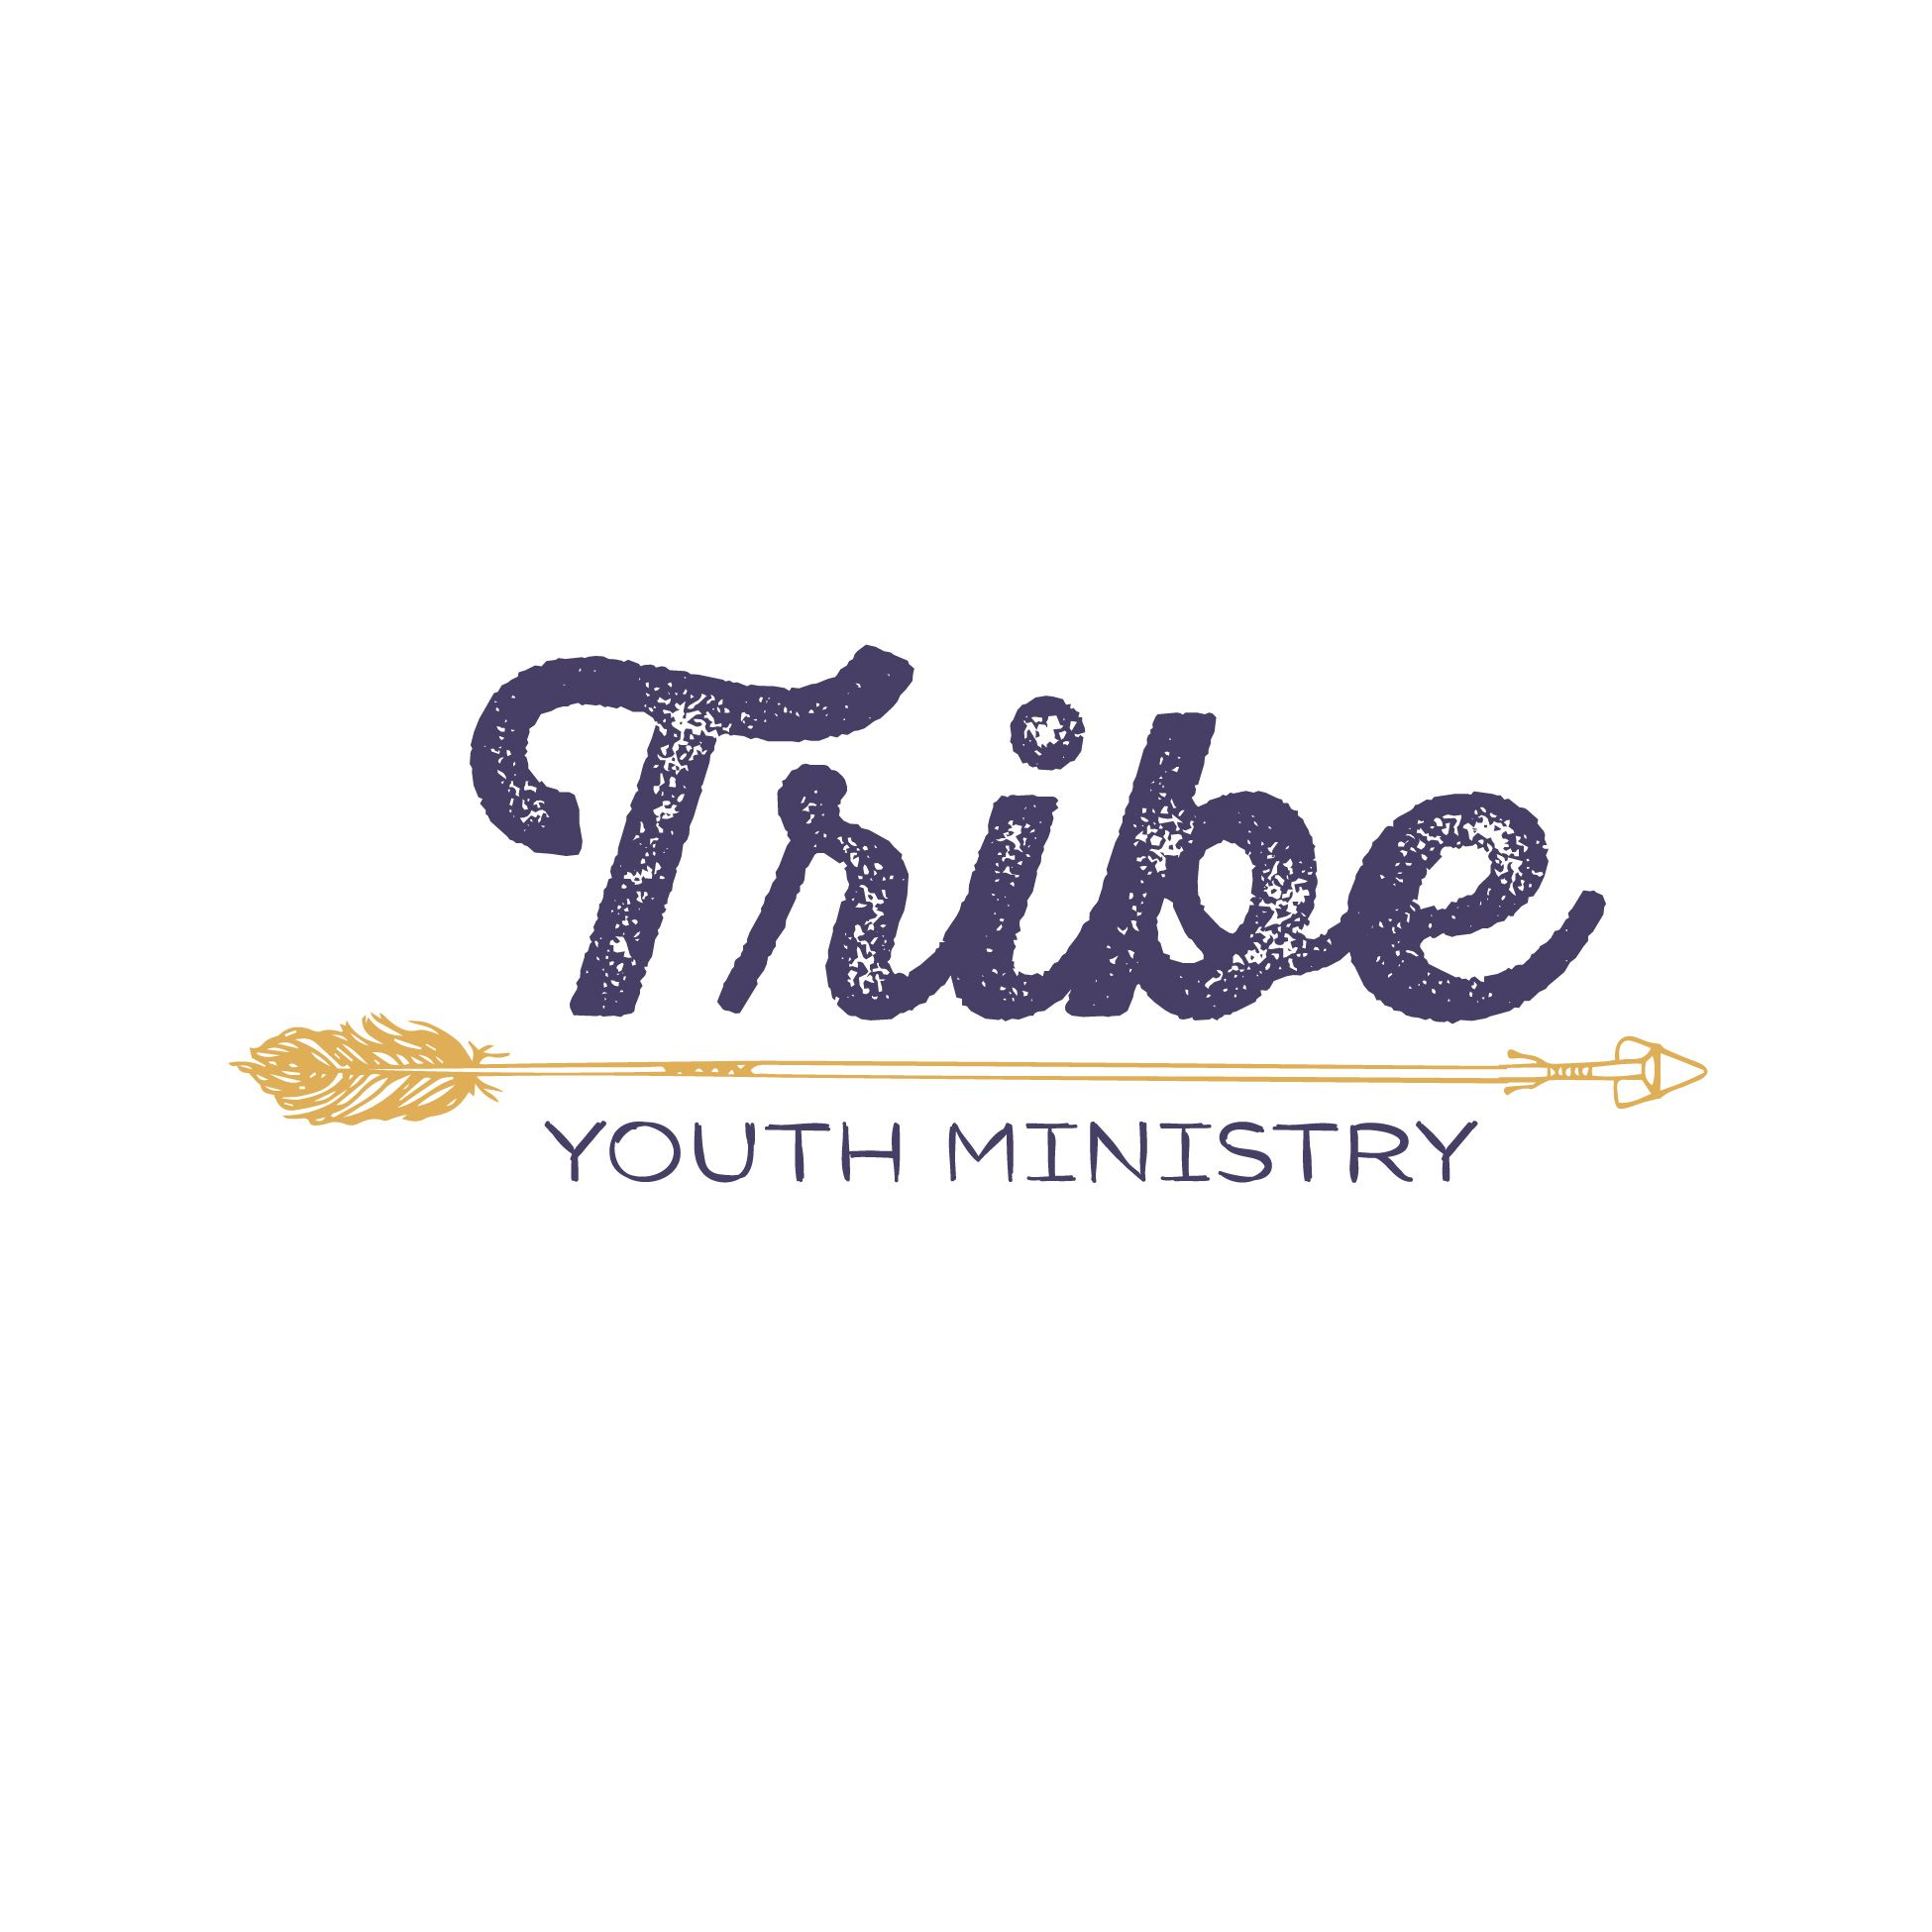 Tribe Youth Ministry - Youth Group Logos | Youth logo ...